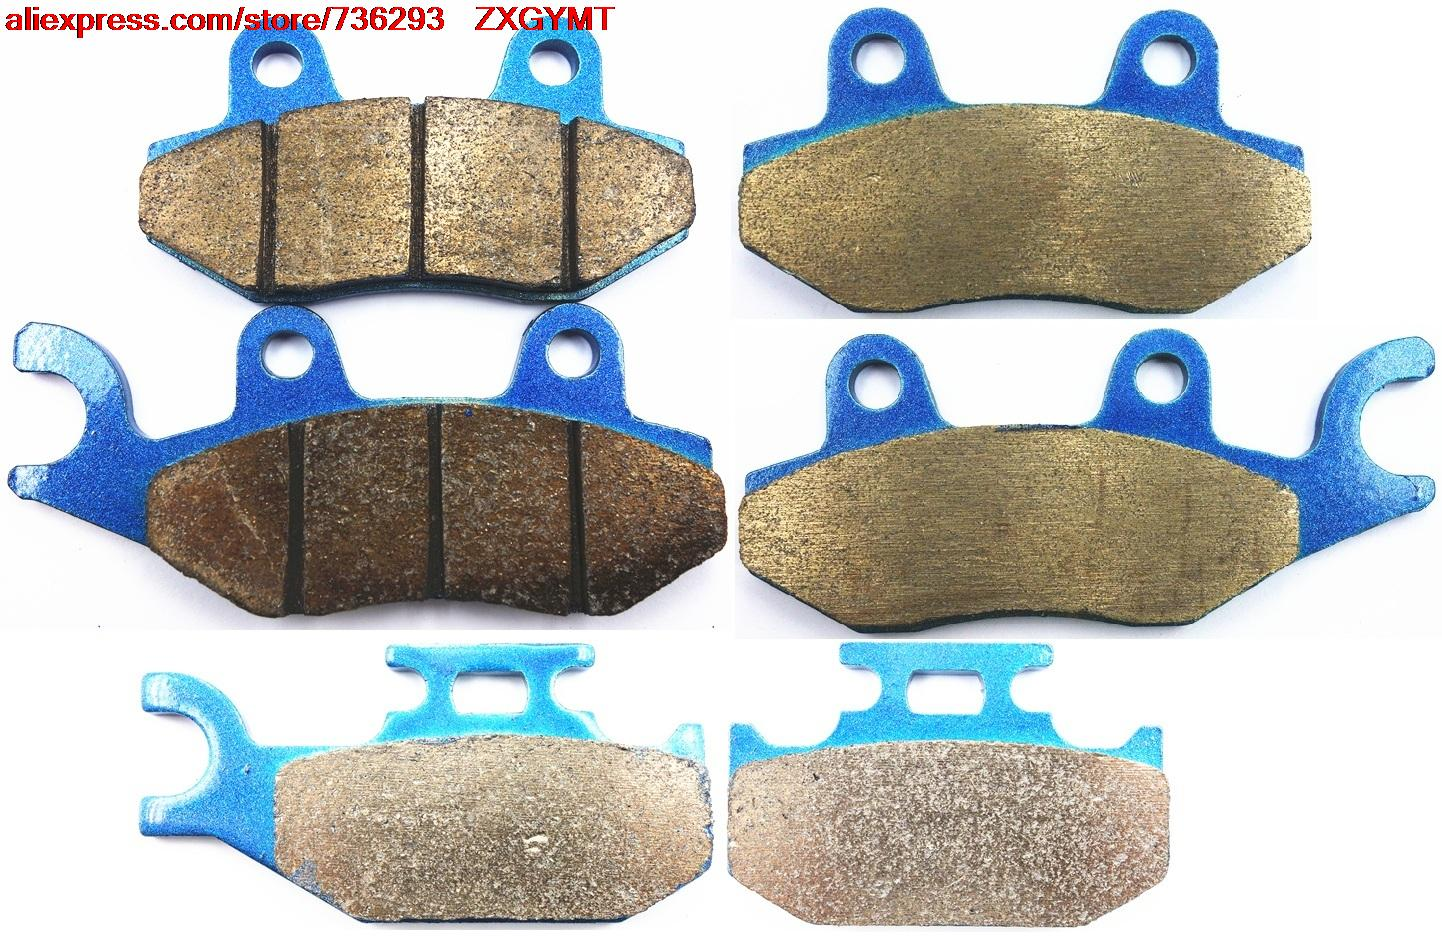 Sintering Motorcycle Brake Pads Set fit YAMAHA YFM700 YFM 700 R Raptor 2006 - 2008